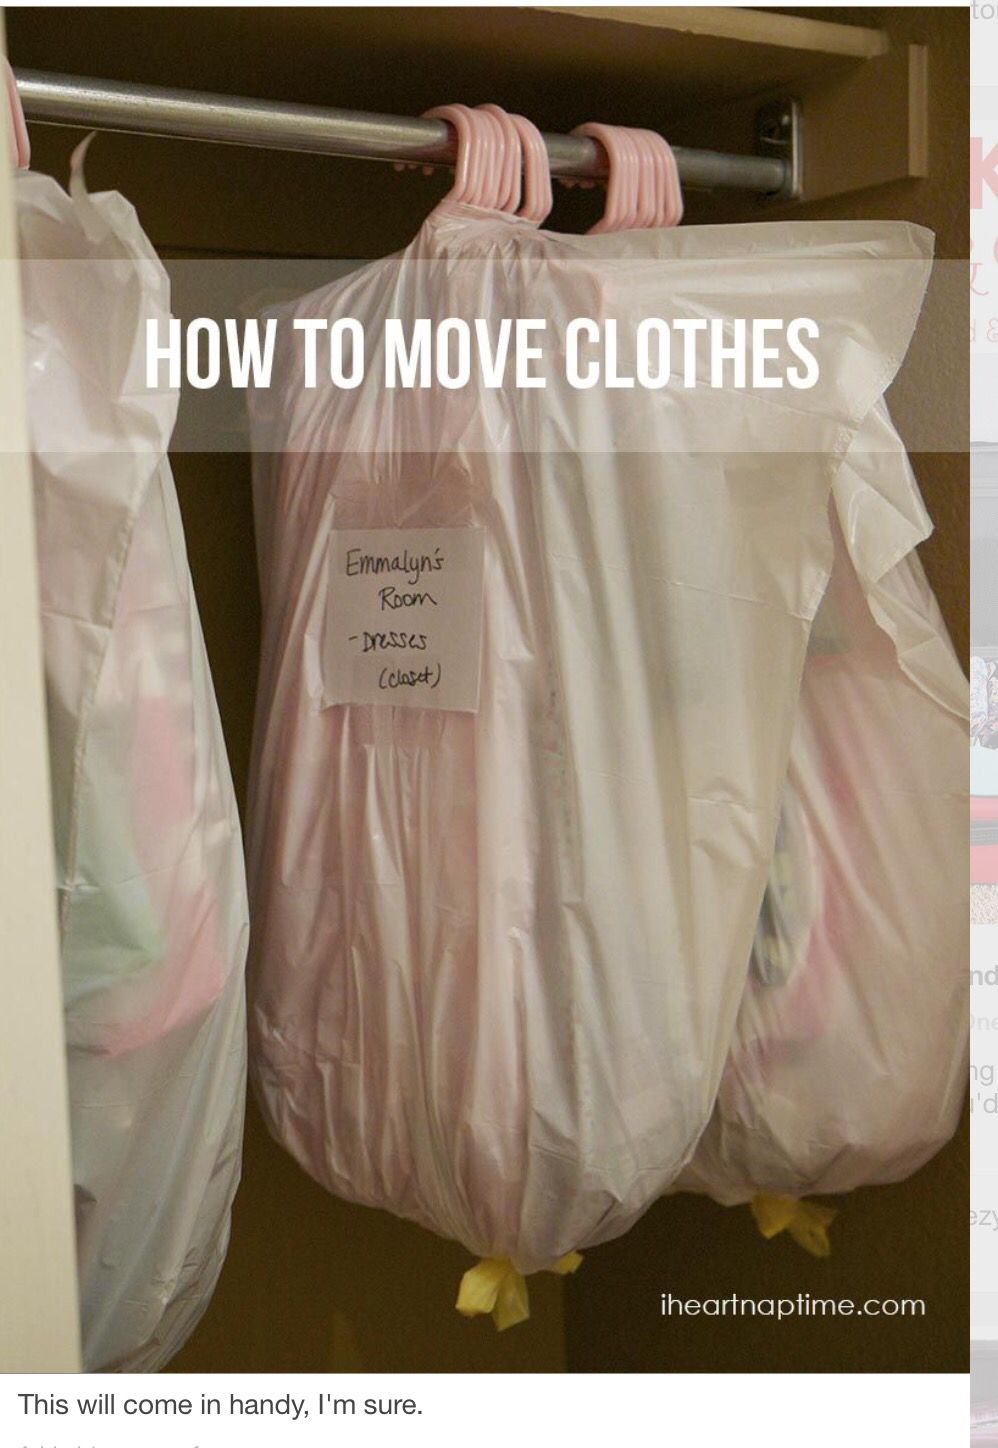 How to move clothes